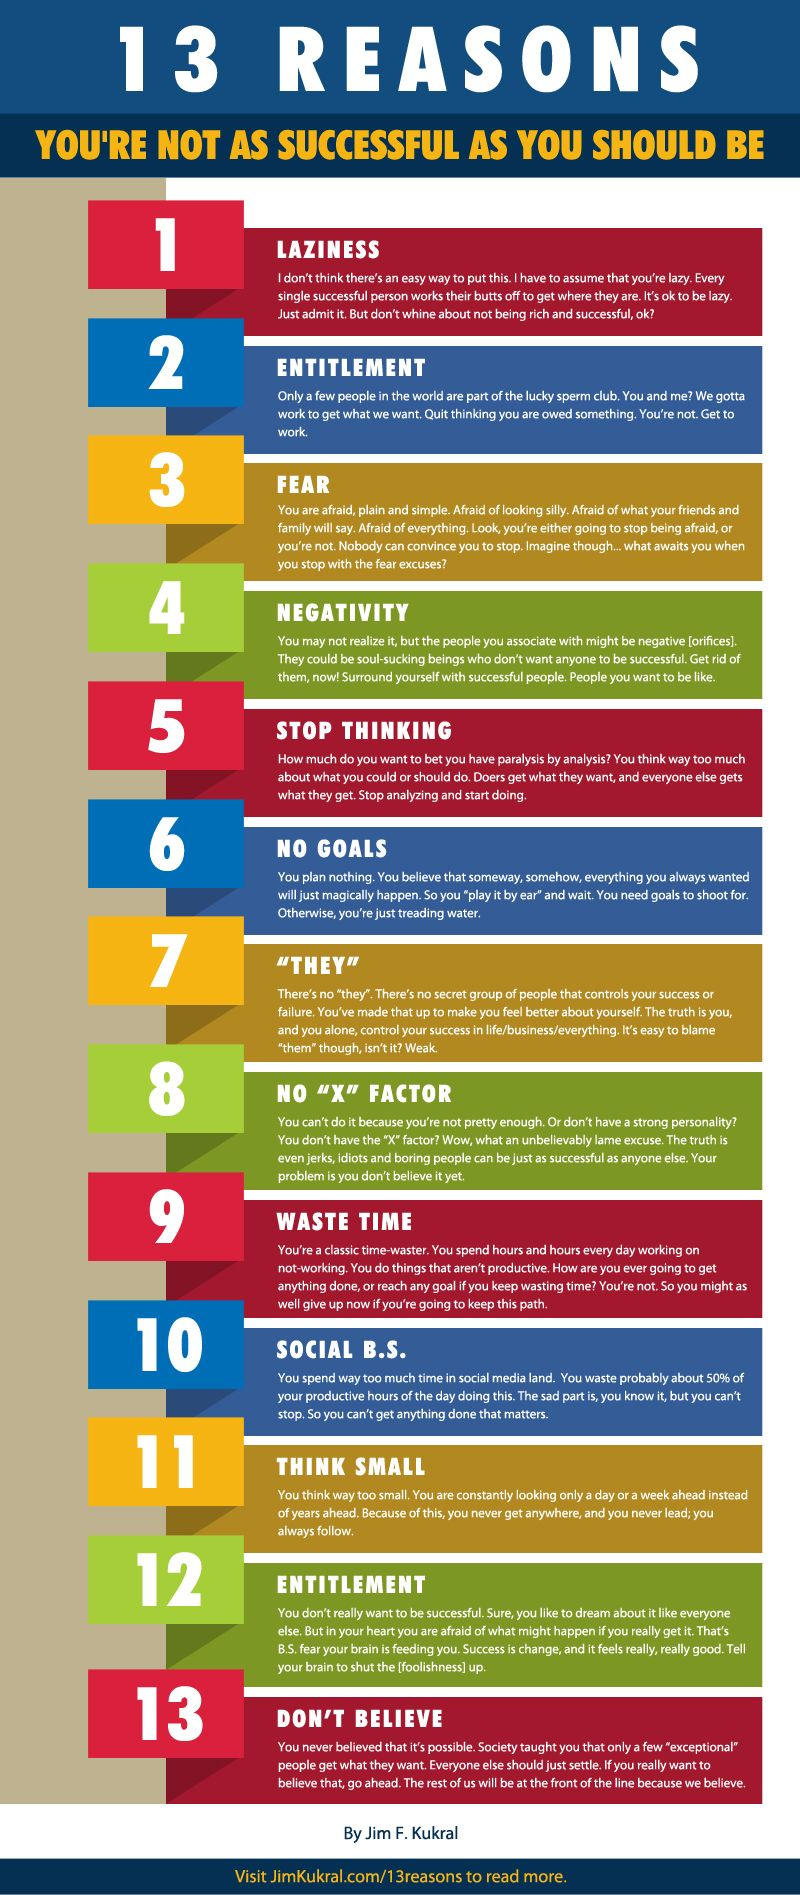 13 Reasons you're not as succesful as you'd like to be...